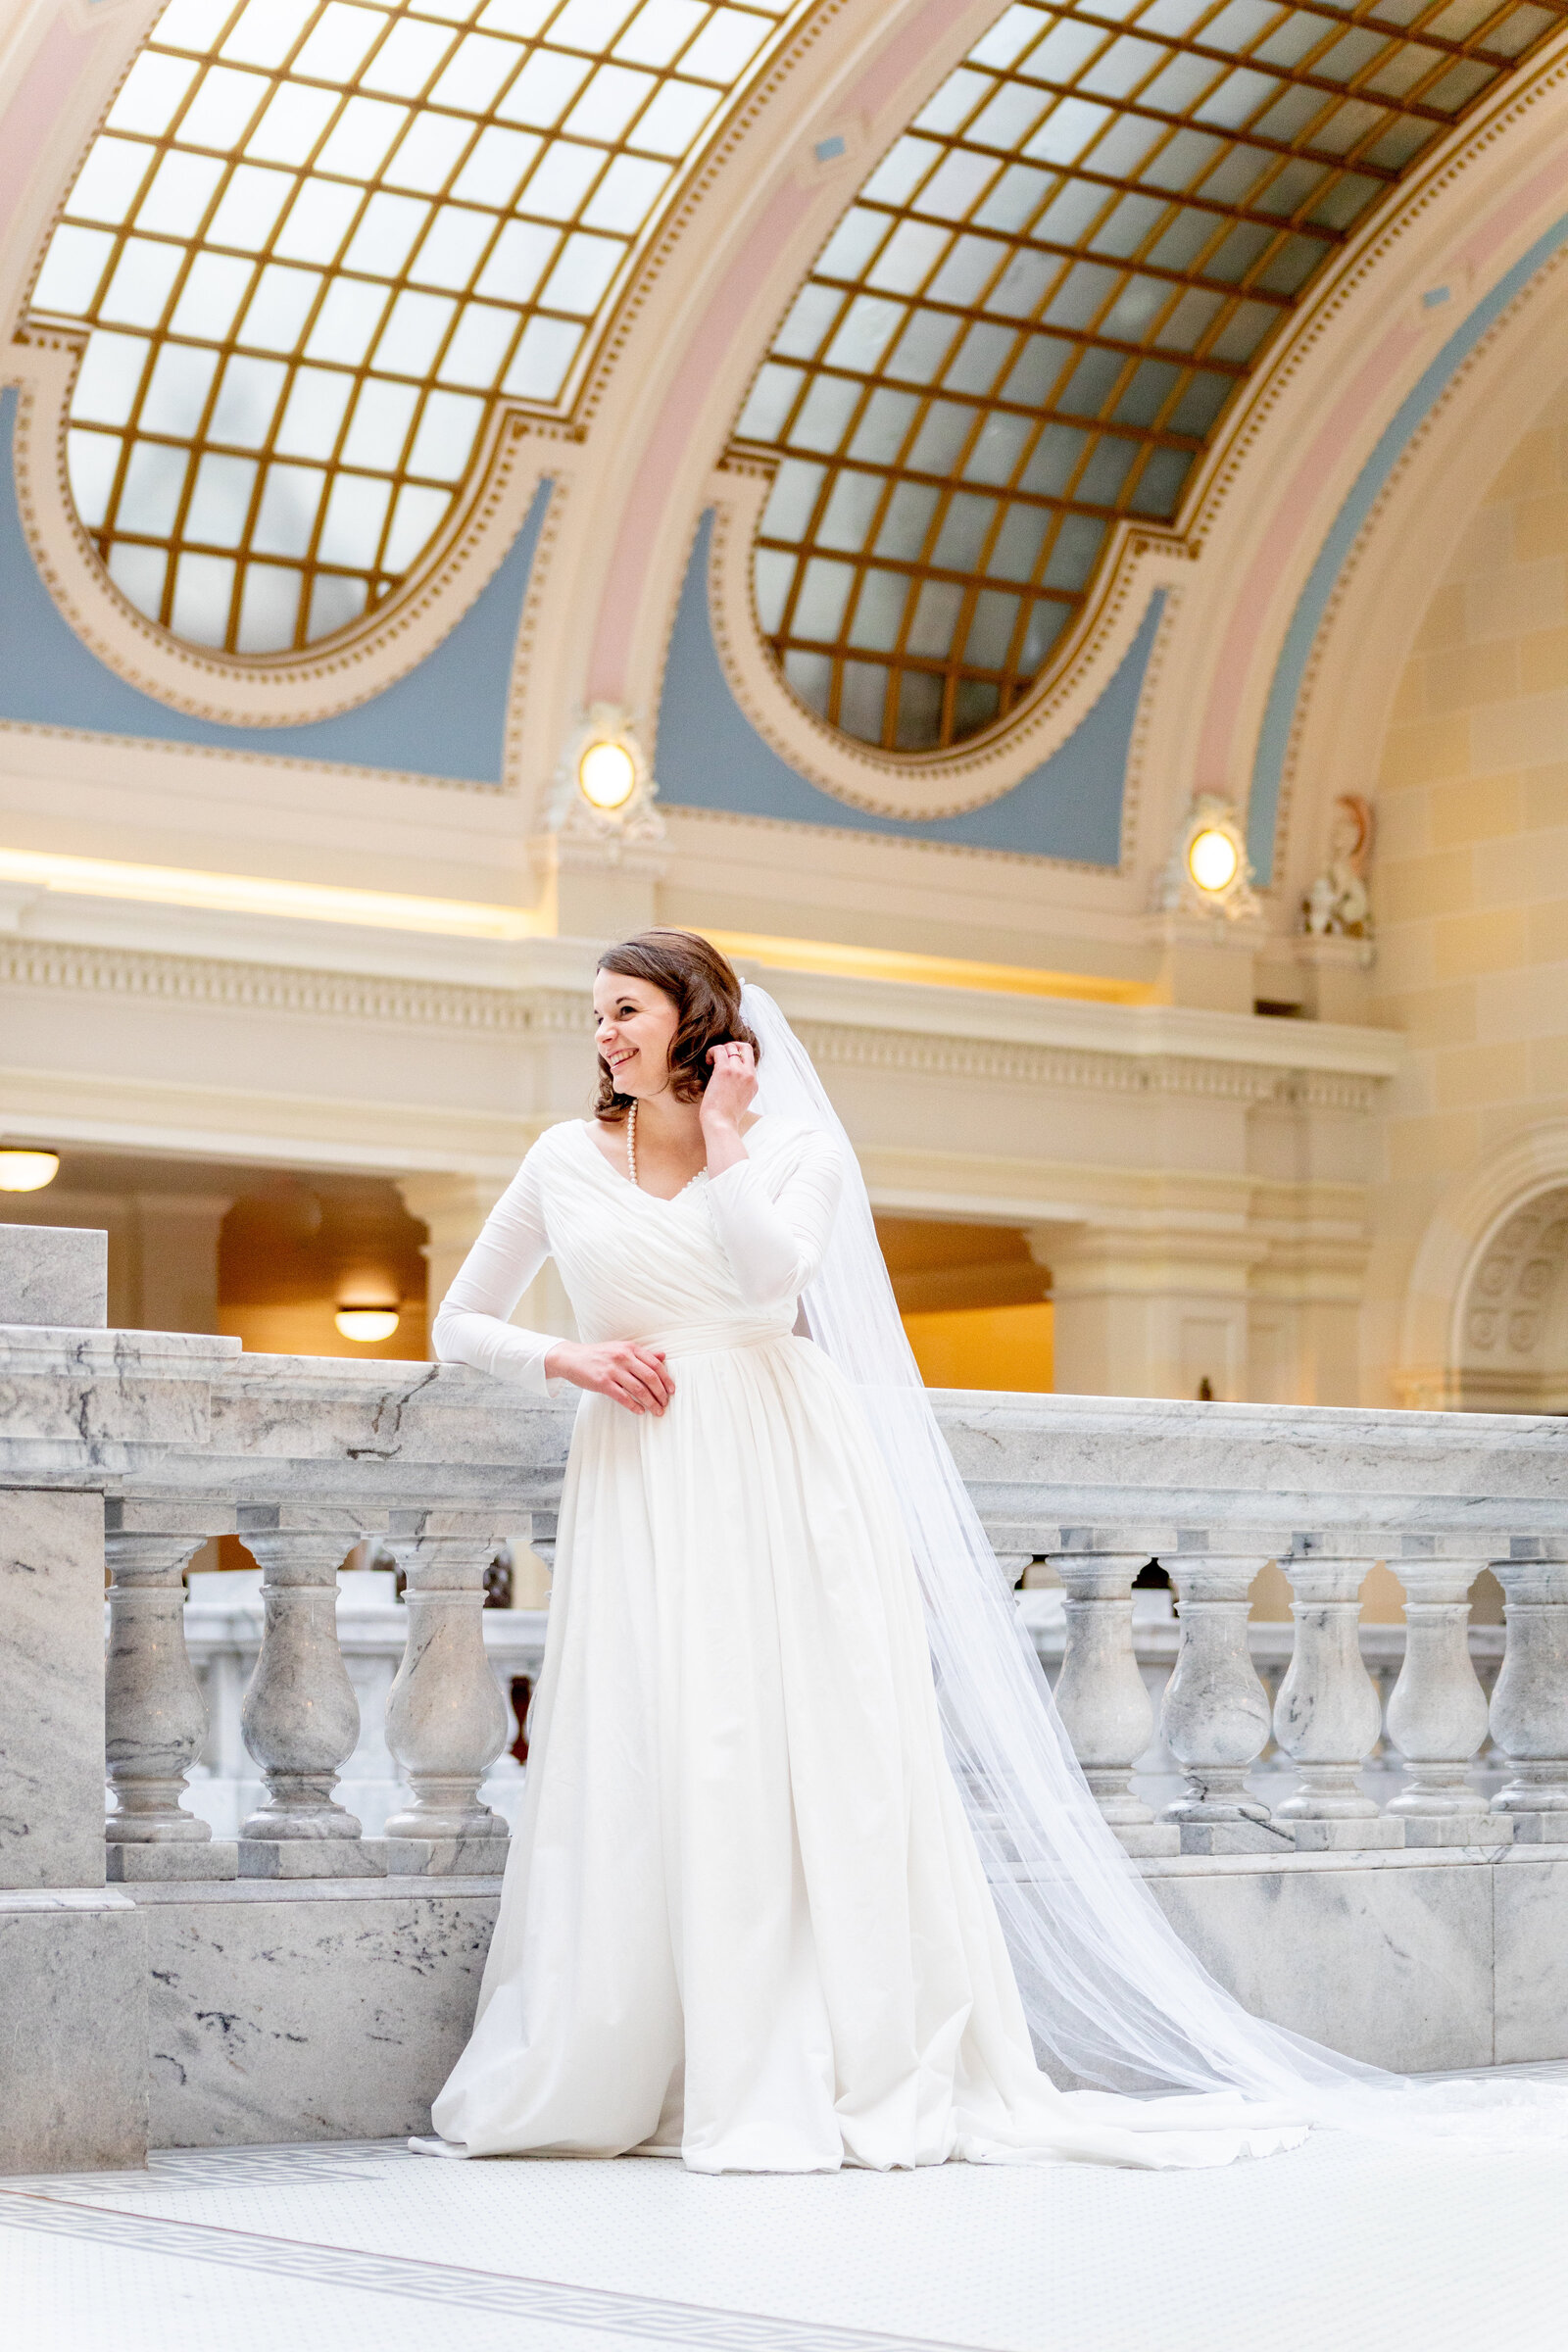 Salt_Lake_City_Wedding_Photographer_Love_Melissa_Photography6